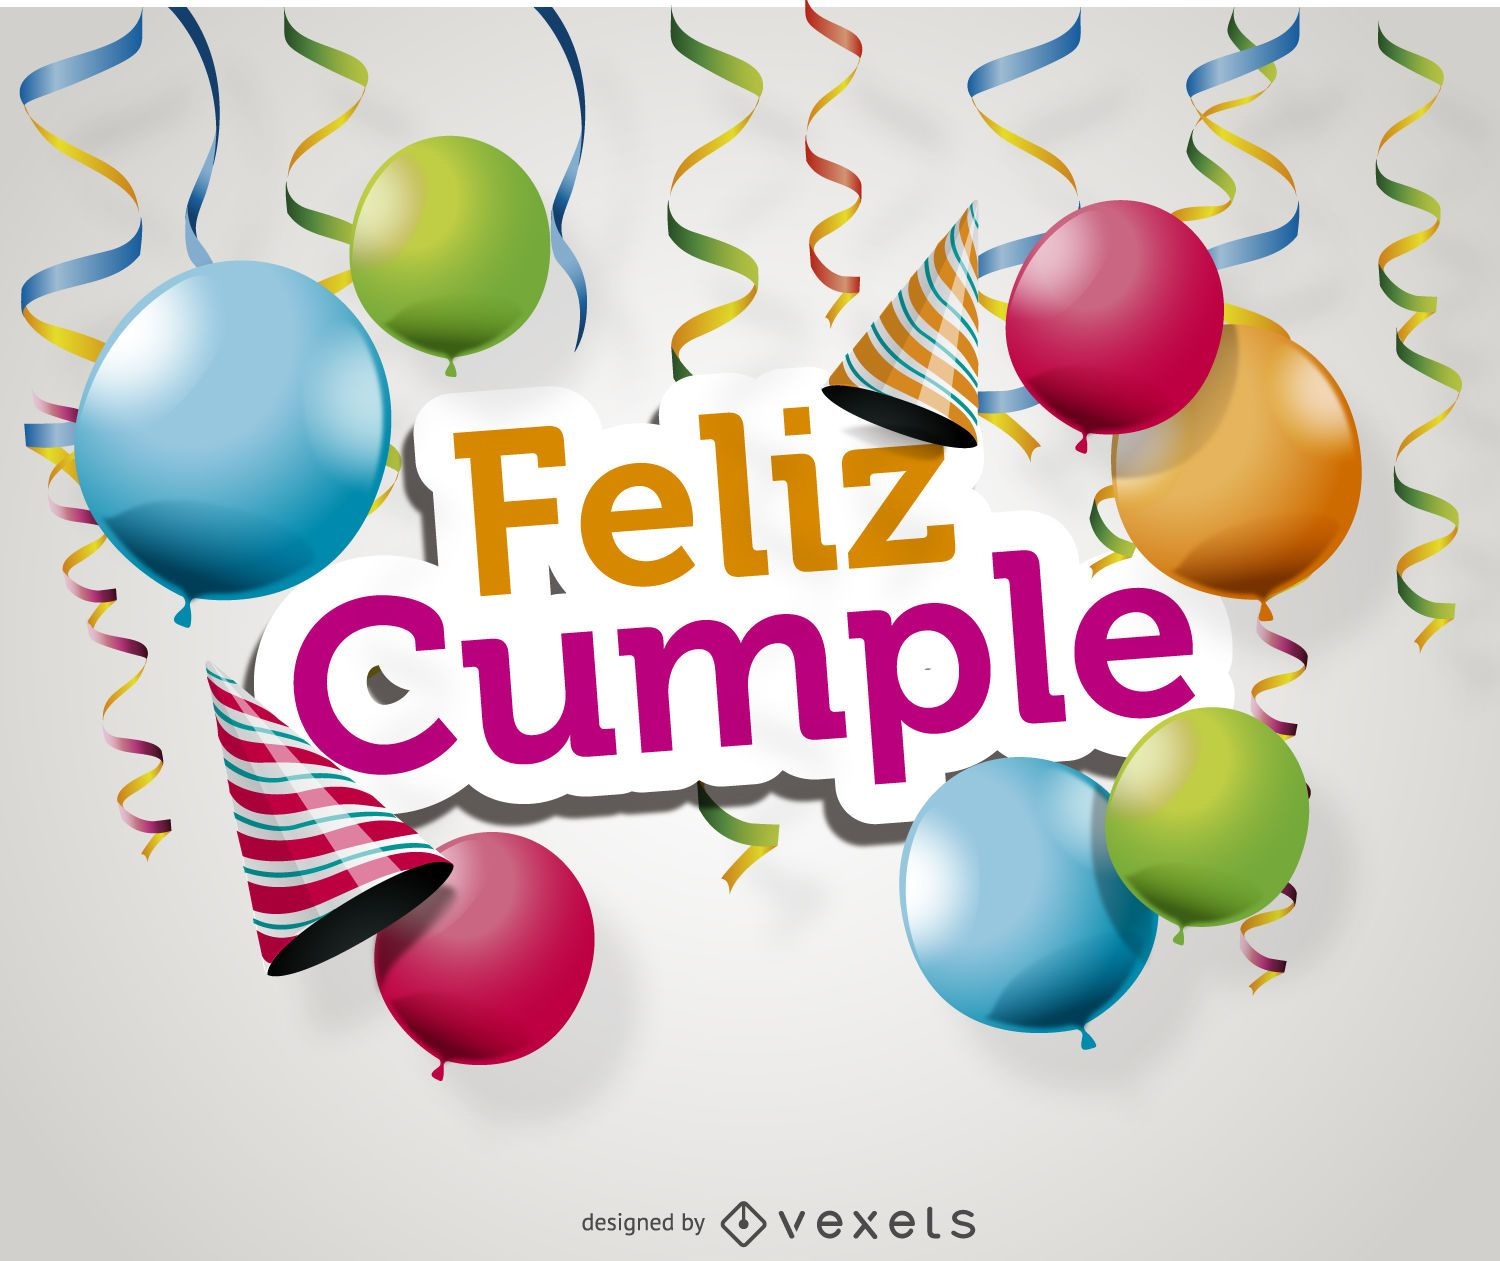 Feliz cumple card Vector download